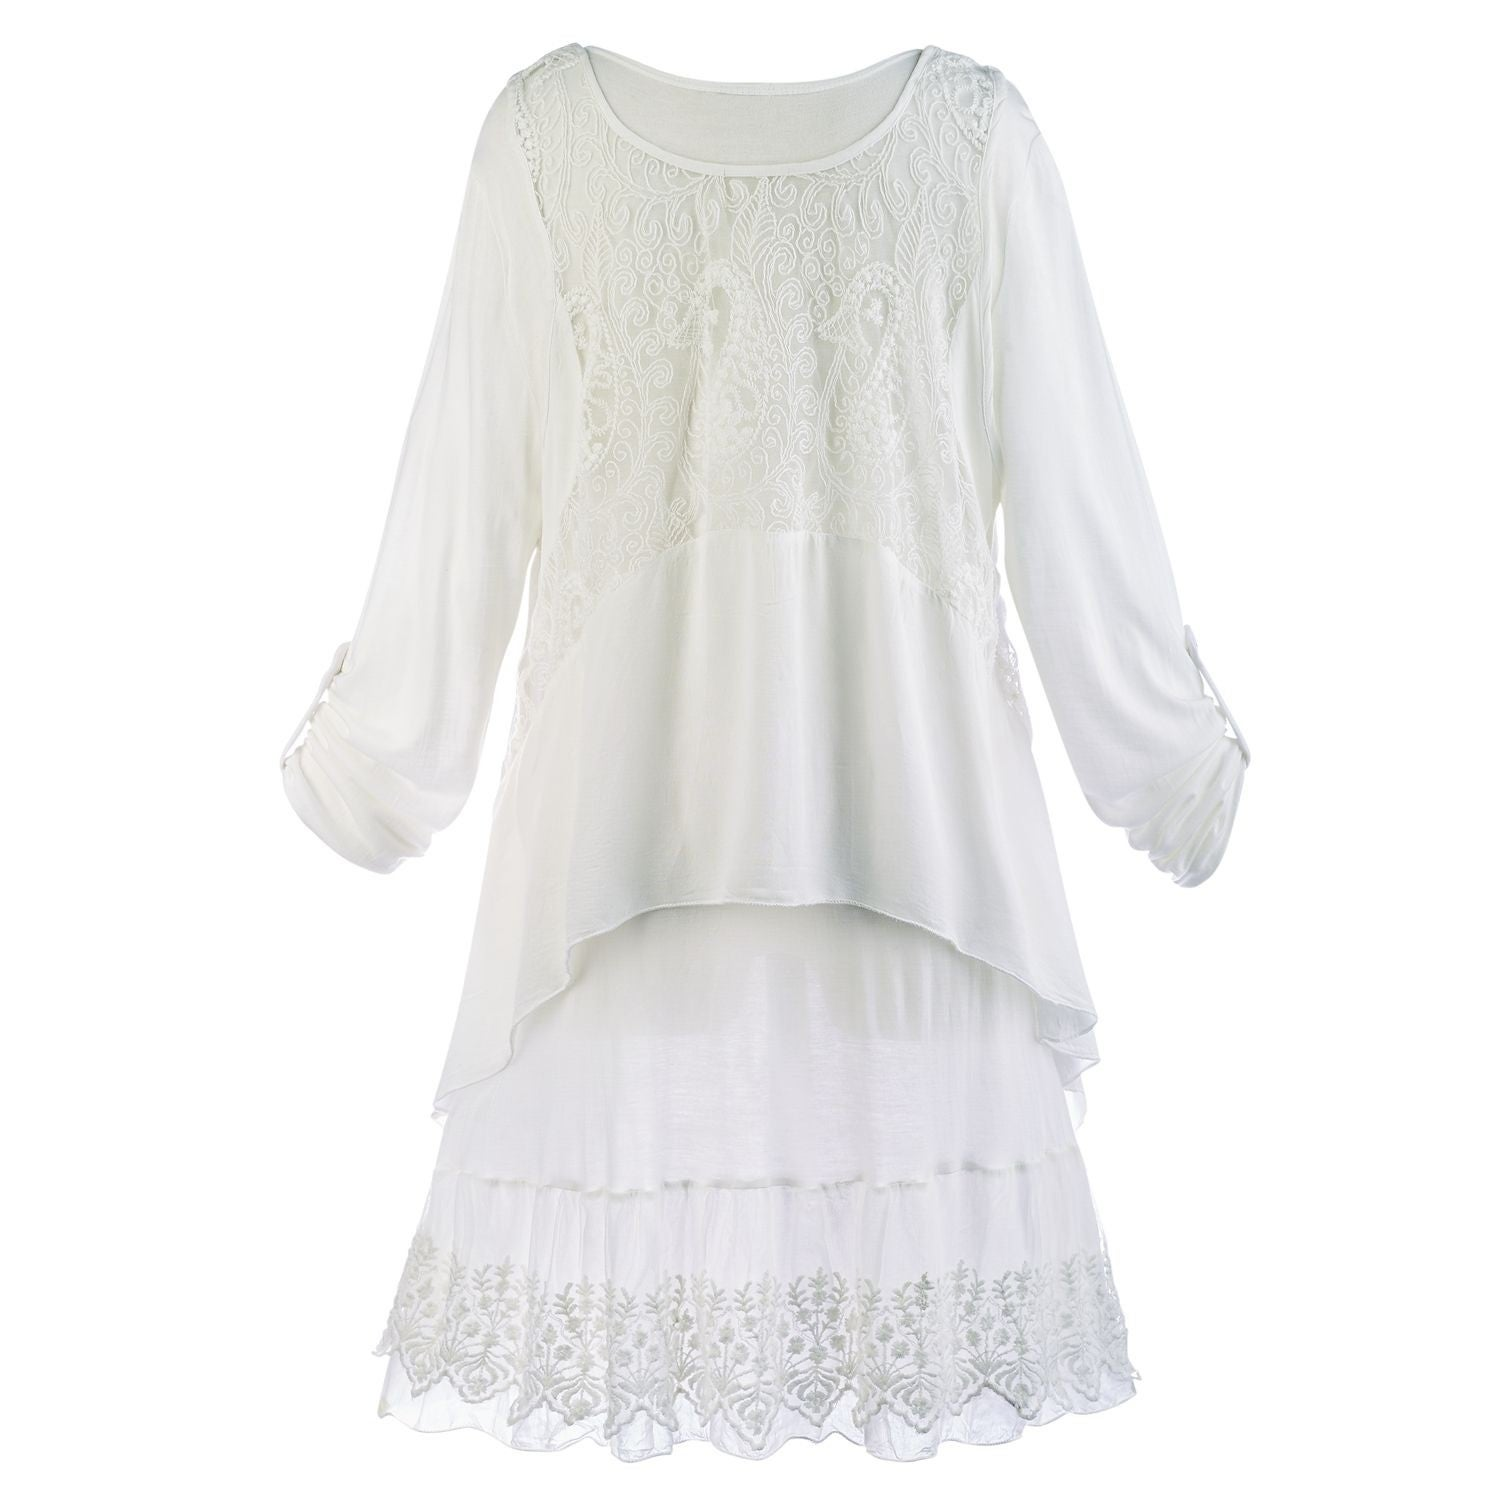 930ac4c4999 Shop Women's Wispy White Tunic Set - Long Roll-Tab Sleeves Tunic Top & Lace  Tank - Free Shipping Today - Overstock - 20744389